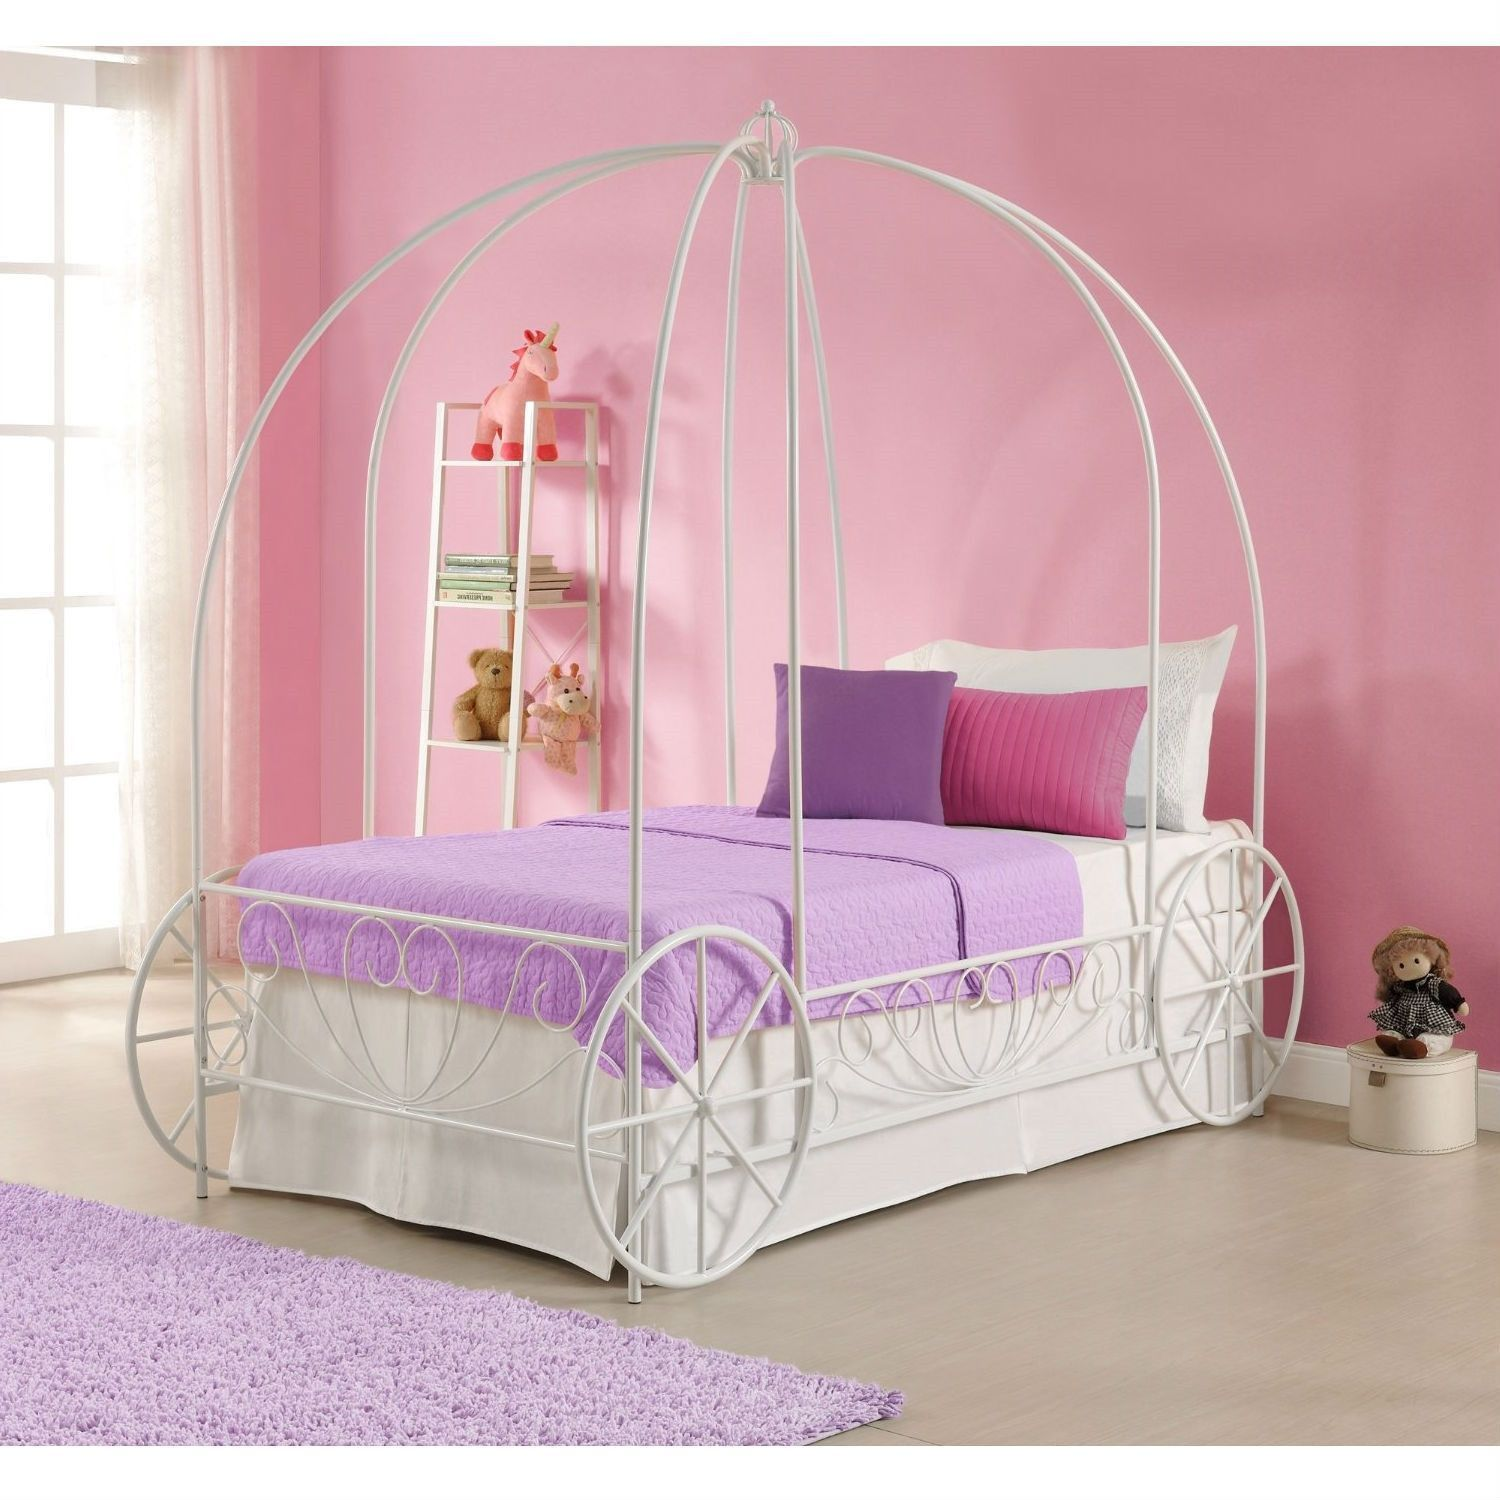 Decorative metal bed frame - Twin Size Princess Canopy Bed With Decorative Wheels In White Metal Finish